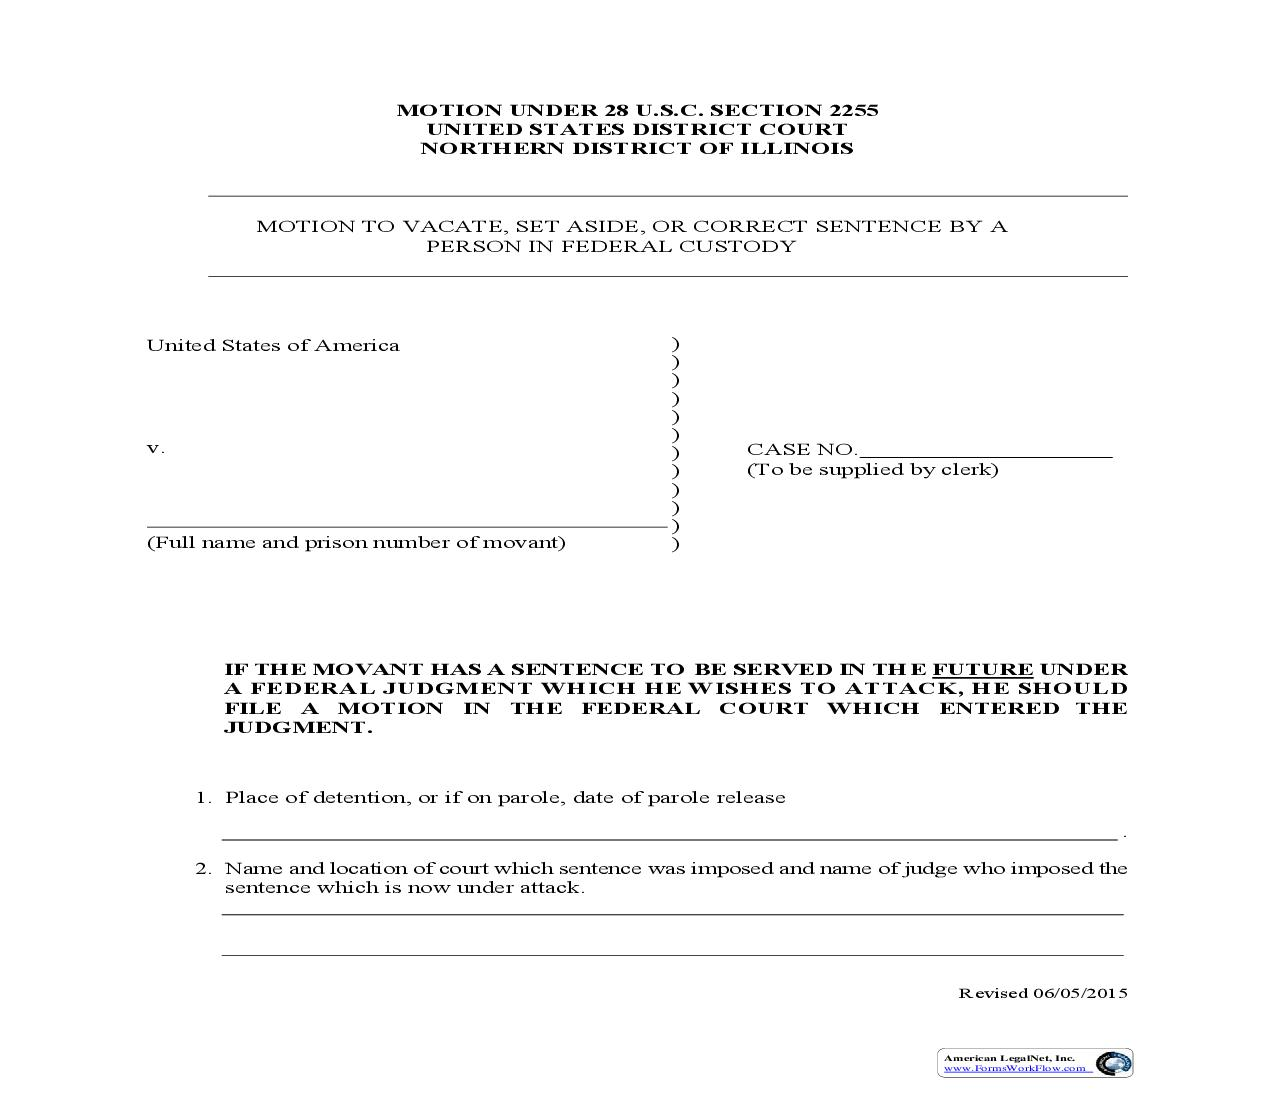 Motion To Vacate Set Aside Or Correct Sentence By A Person In Federal Custody | Pdf Fpdf Doc Docx | Illinois